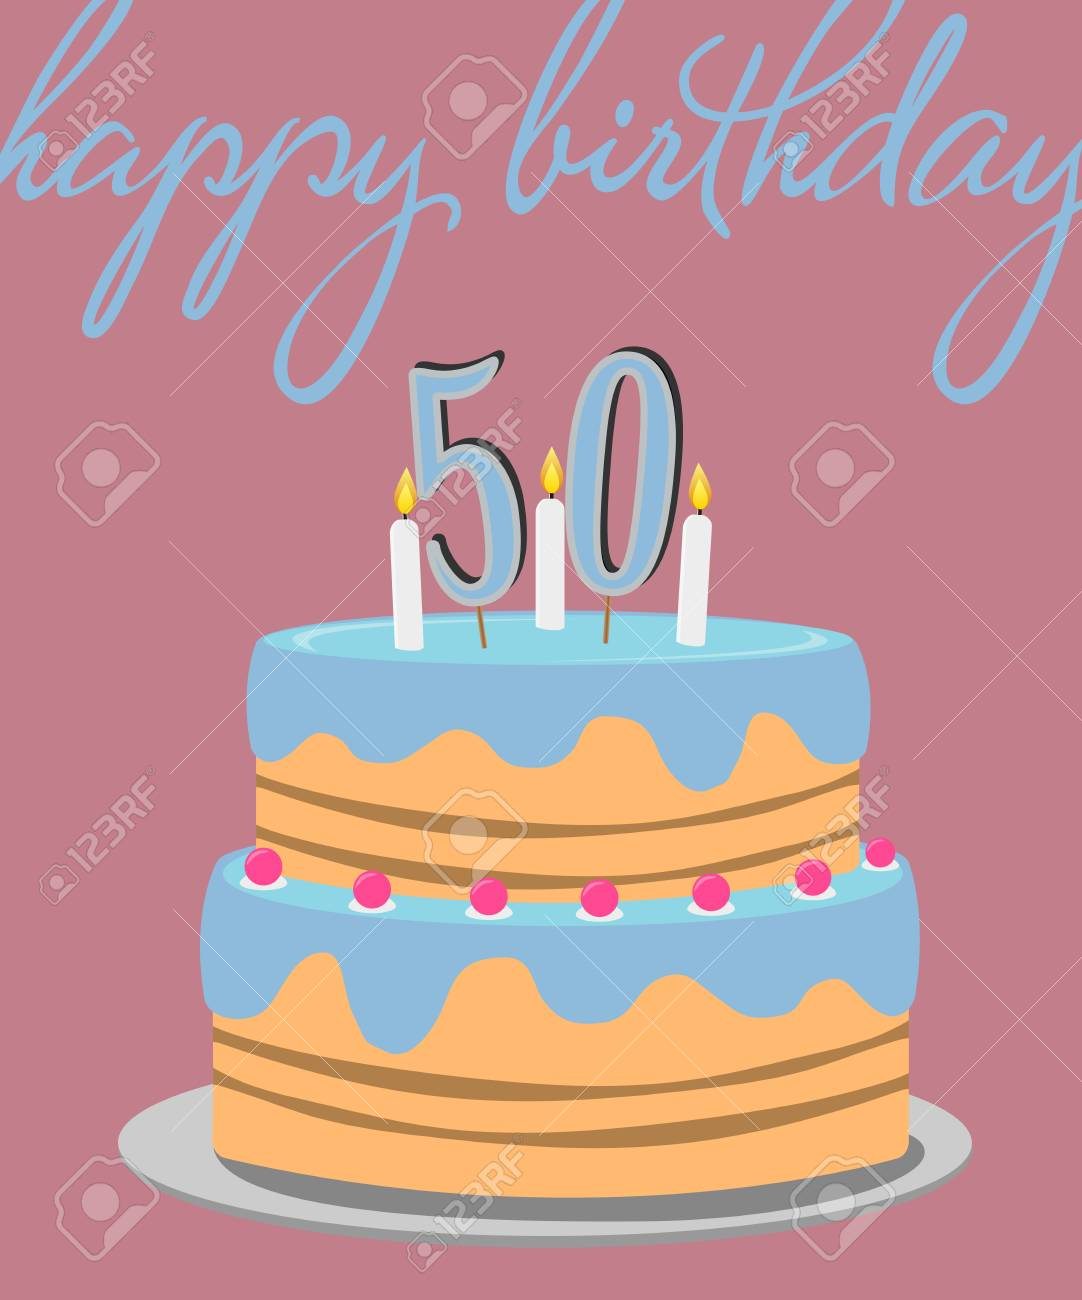 Happy 50th Birthday Greeting Card With Colorful Cake Illustration Stock